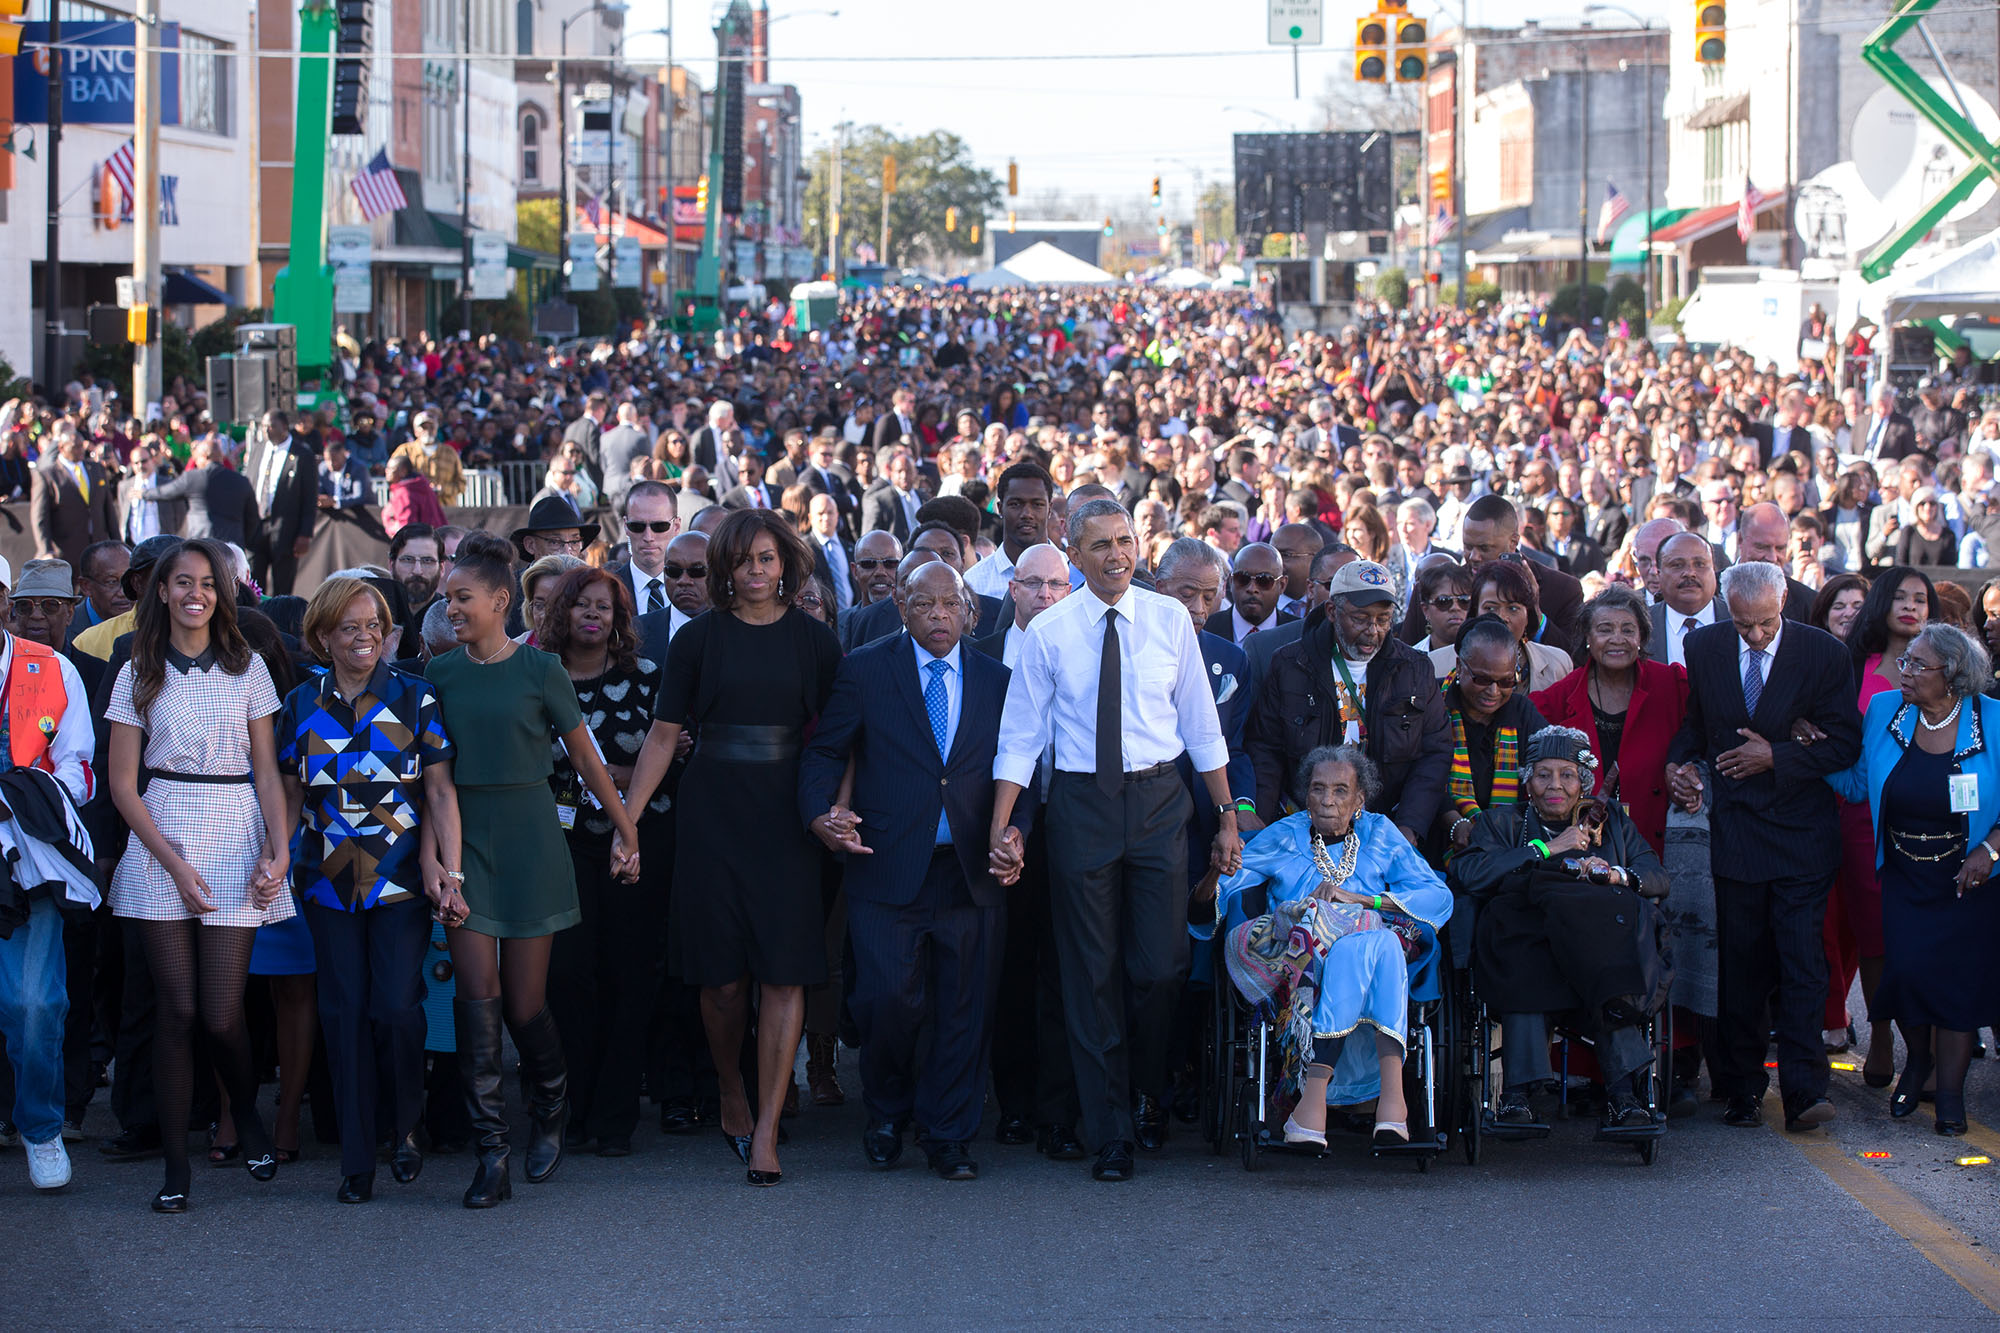 The Obama family marches together in Selma, Alabama.